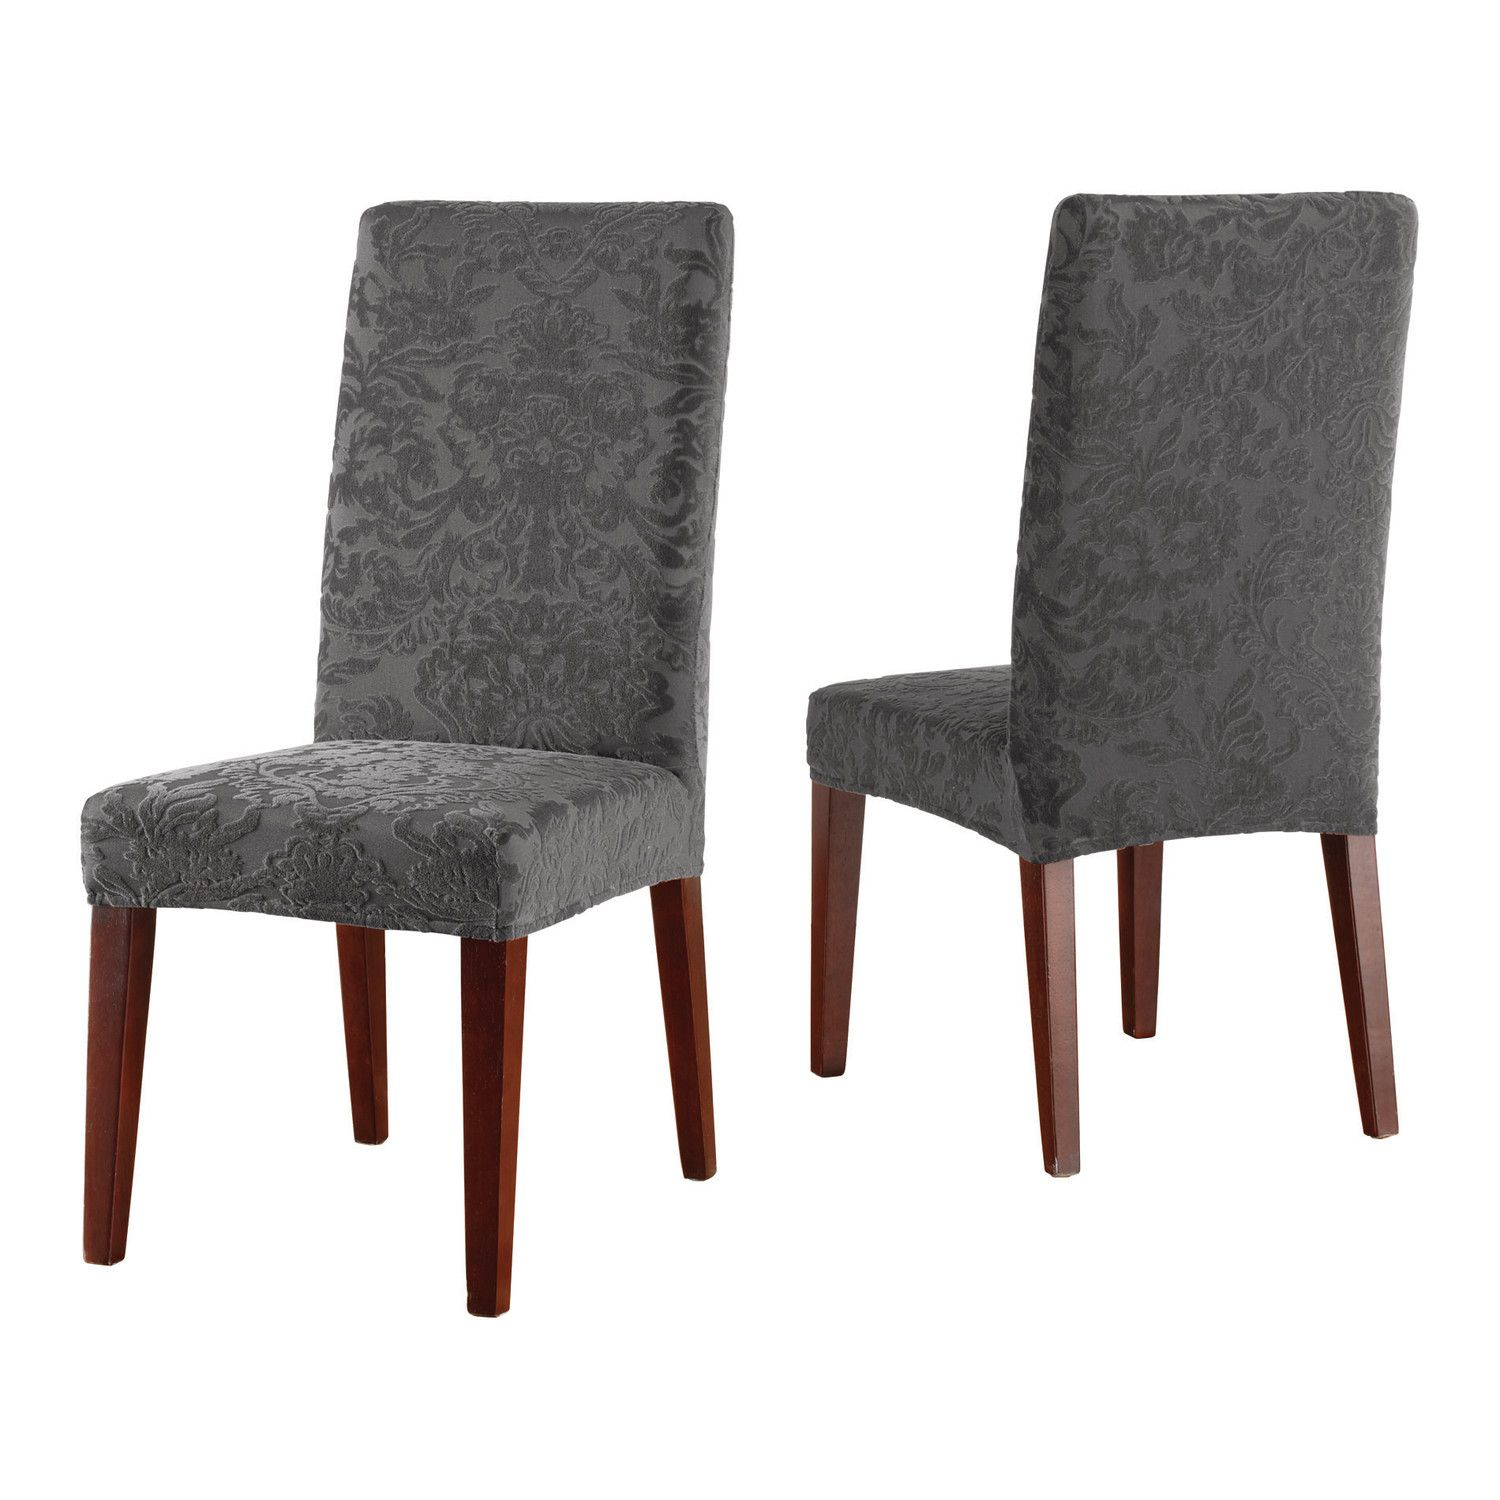 Stretch Jacquard Damask Dining Chair Slipcover Room SlipcoversDining